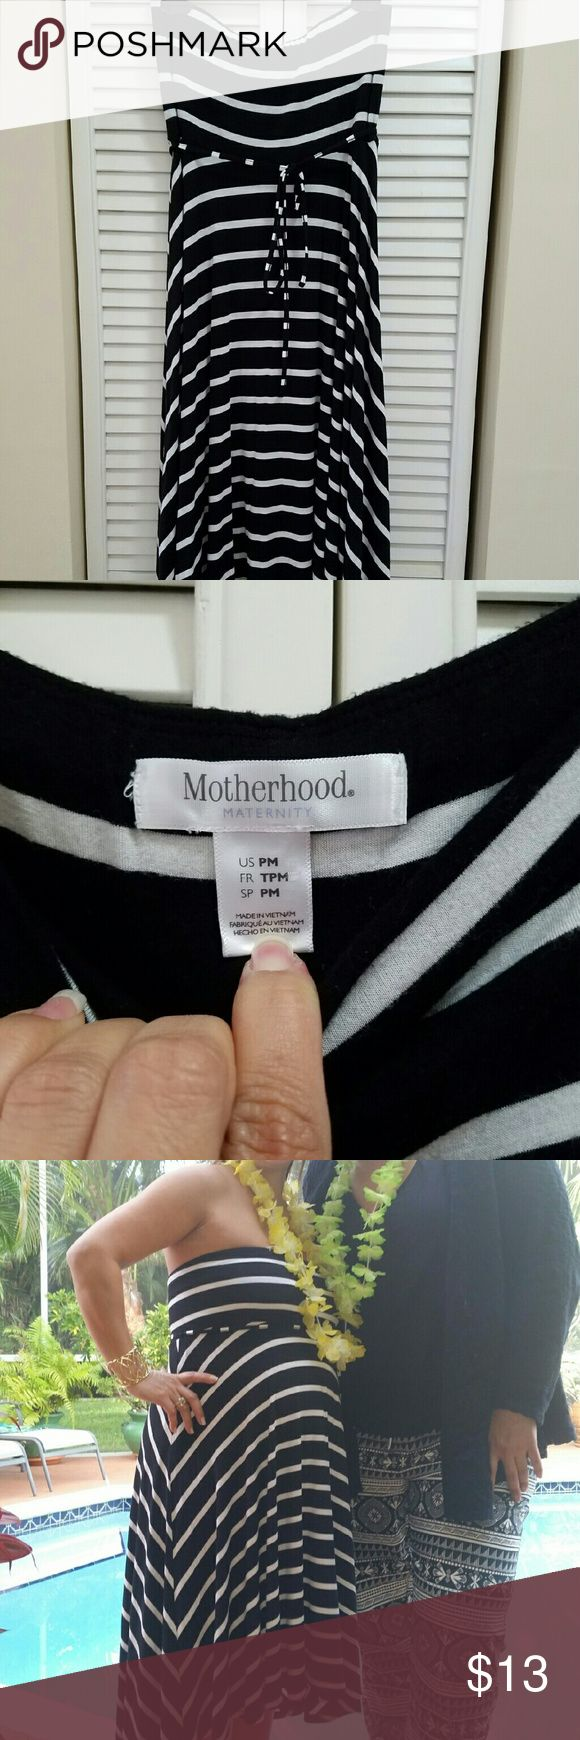 Maternity dress Strapless, black and white hi low dress Dresses High Low